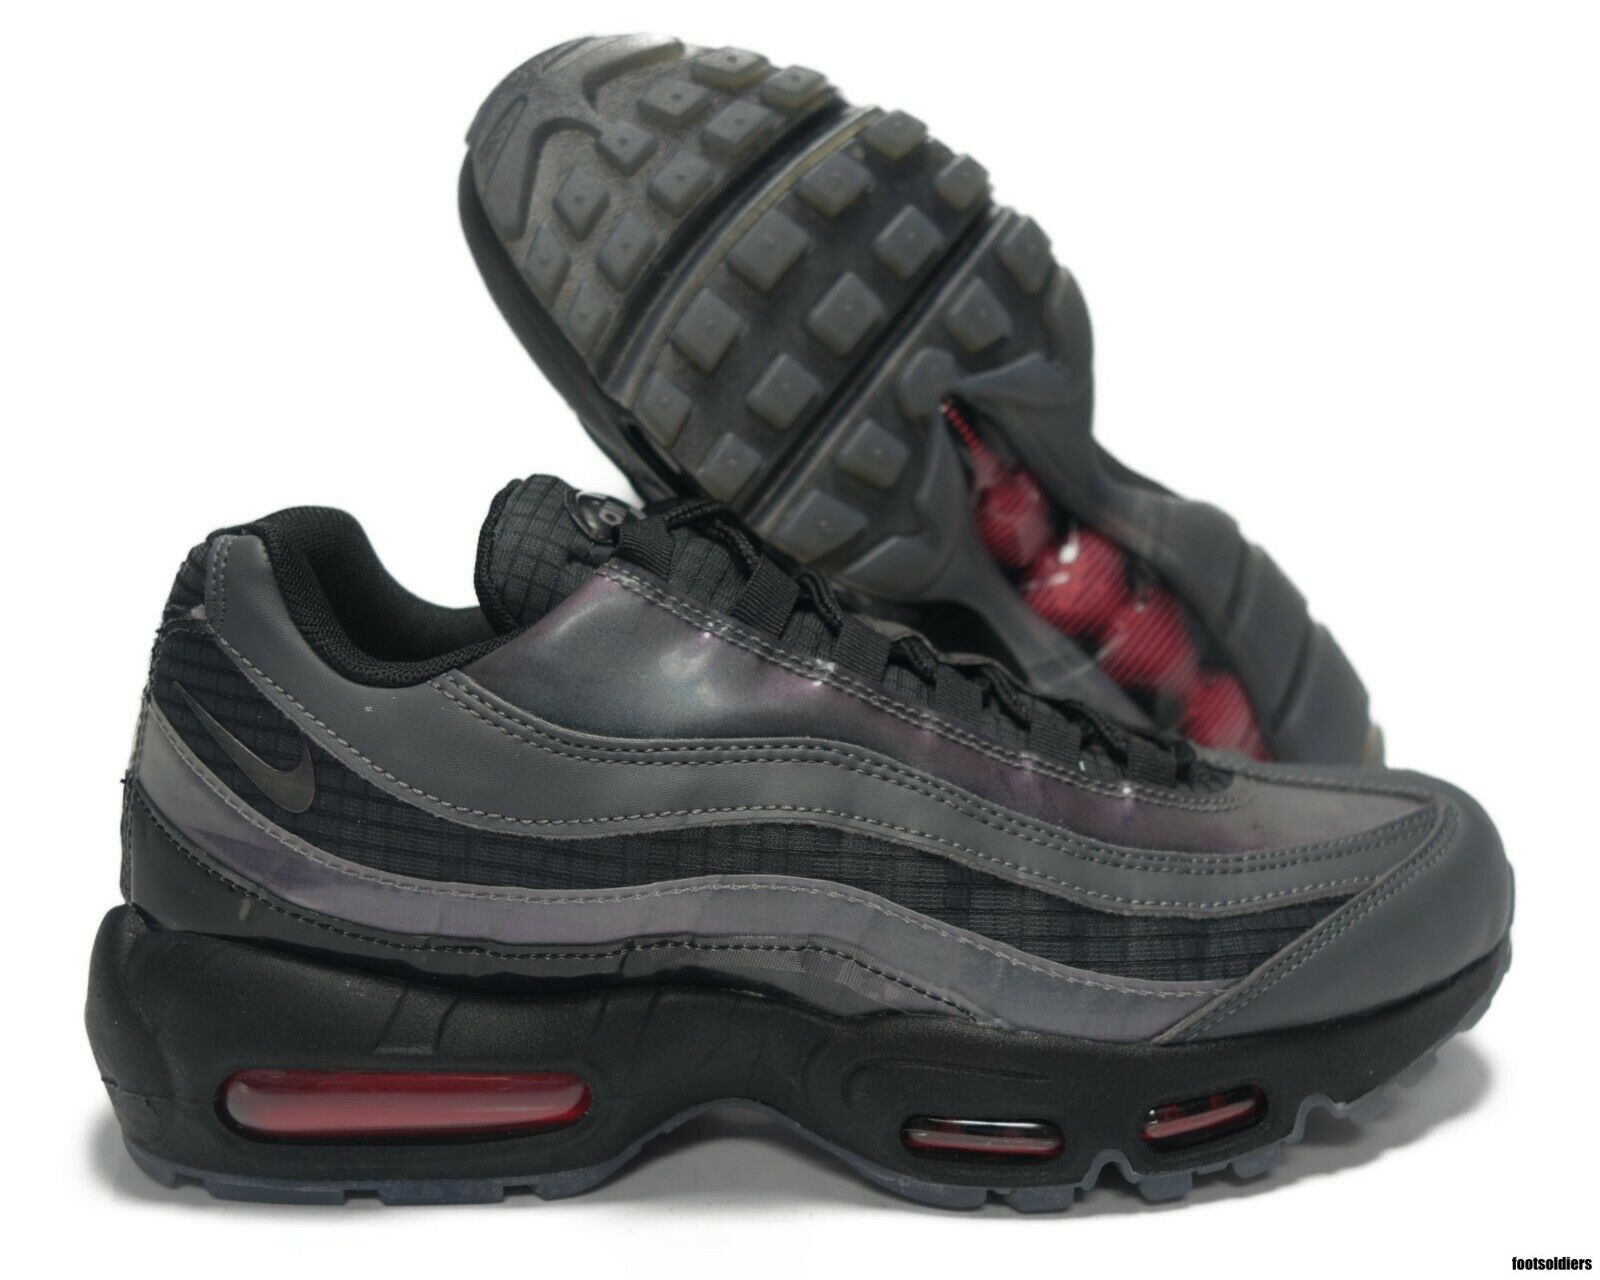 best choice casual shoes on feet images of Nike Air Max 95 LV8 Homme Chaussure Braise Brille/Gris Foncé ...